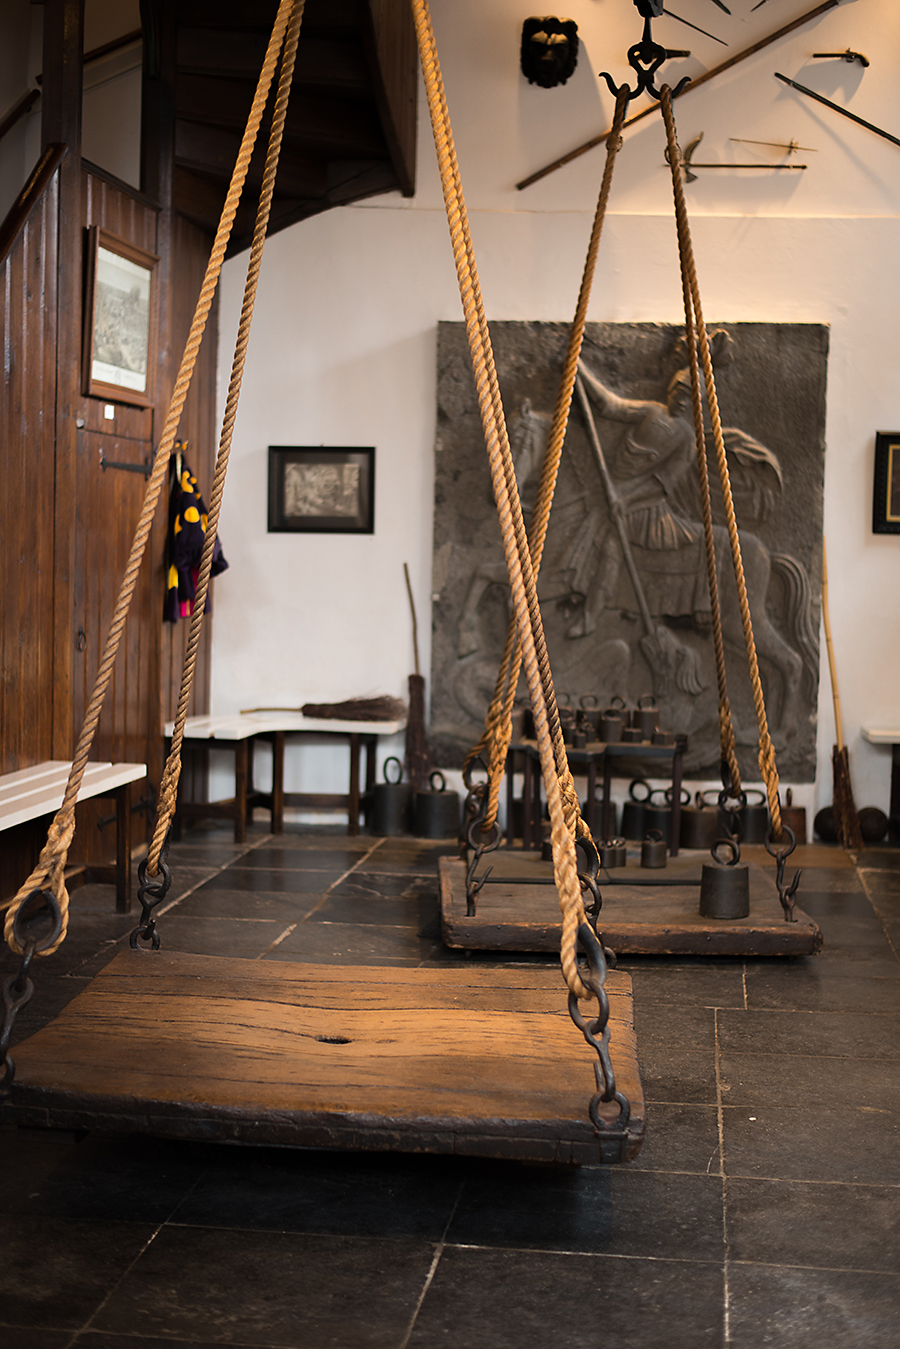 The scales used to weigh women accused of witchcraft